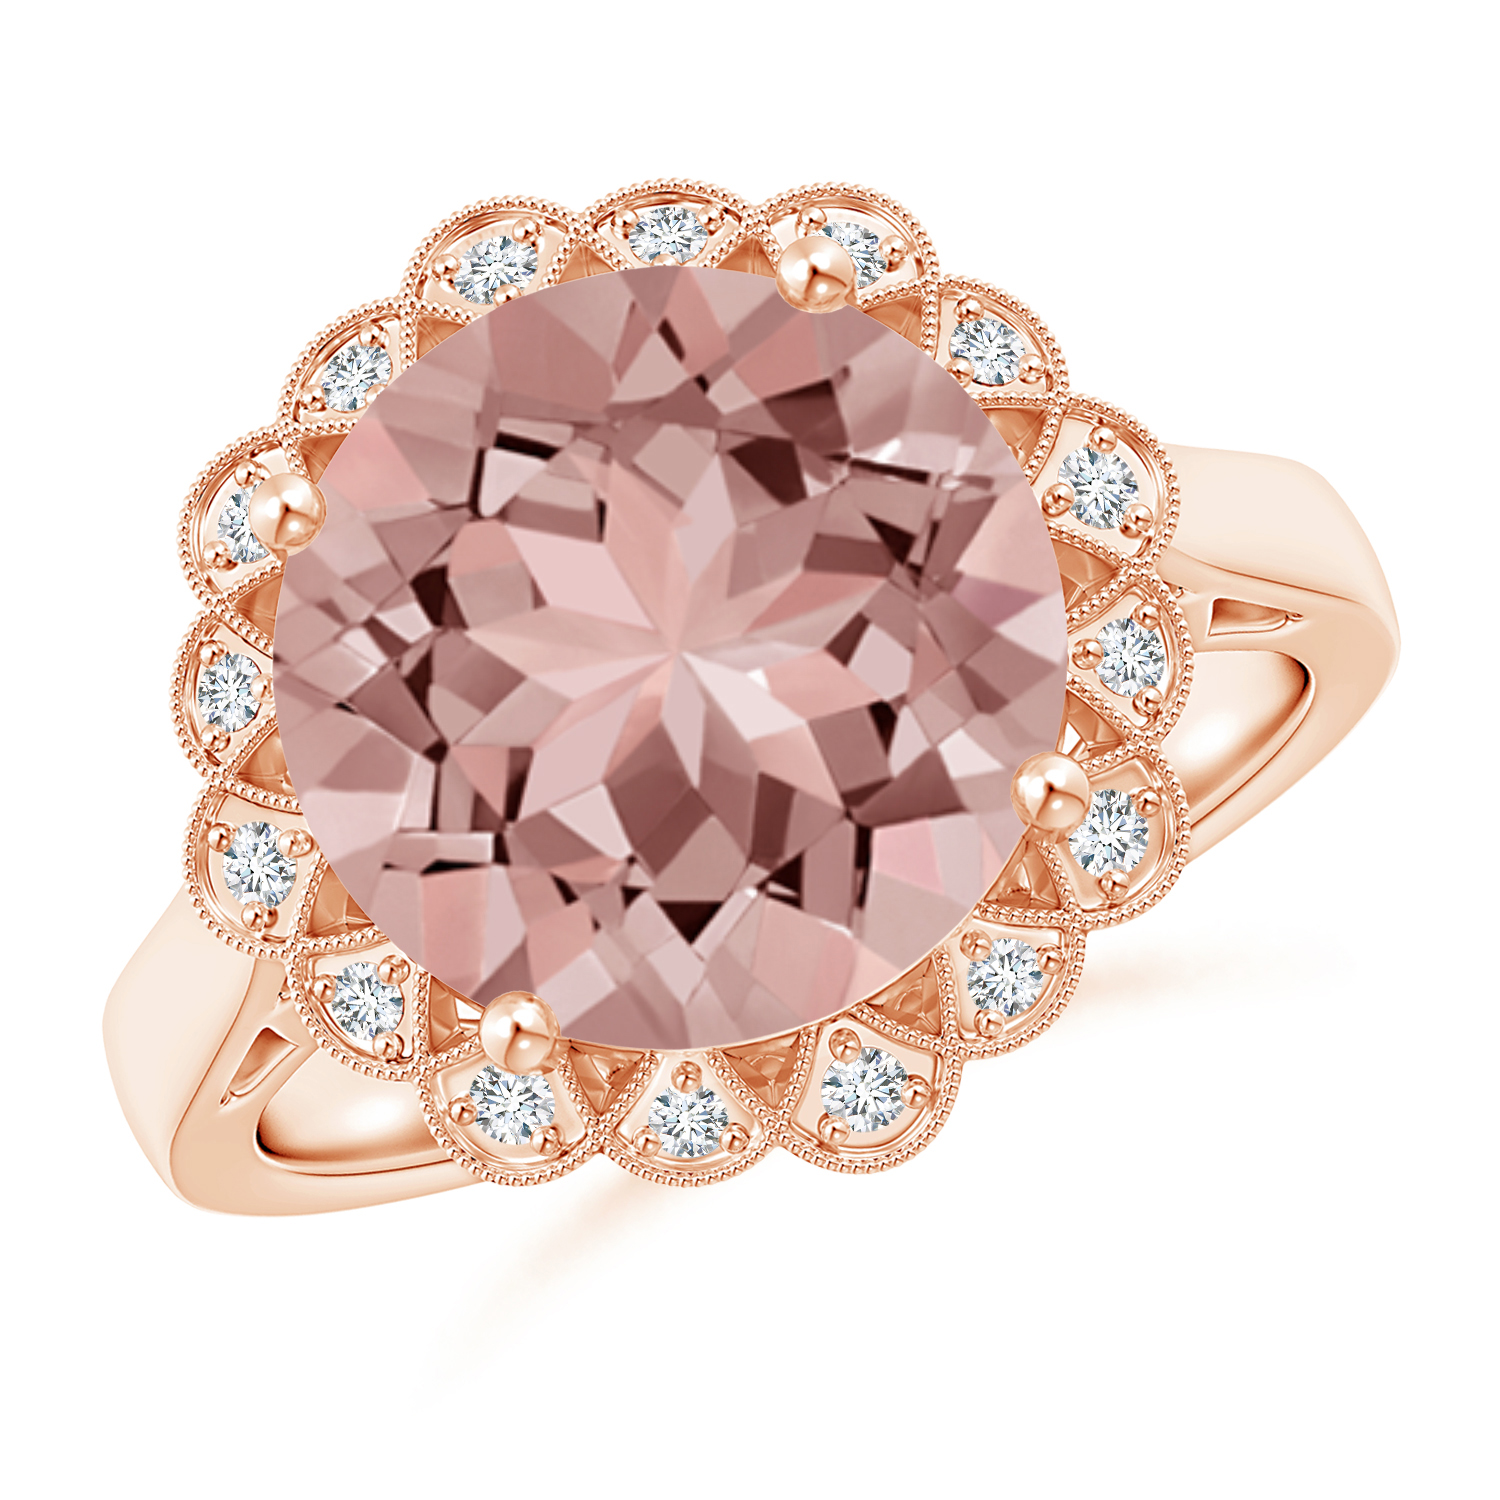 Vintage Style Morganite Cocktail Ring with Floral Halo - Angara.com